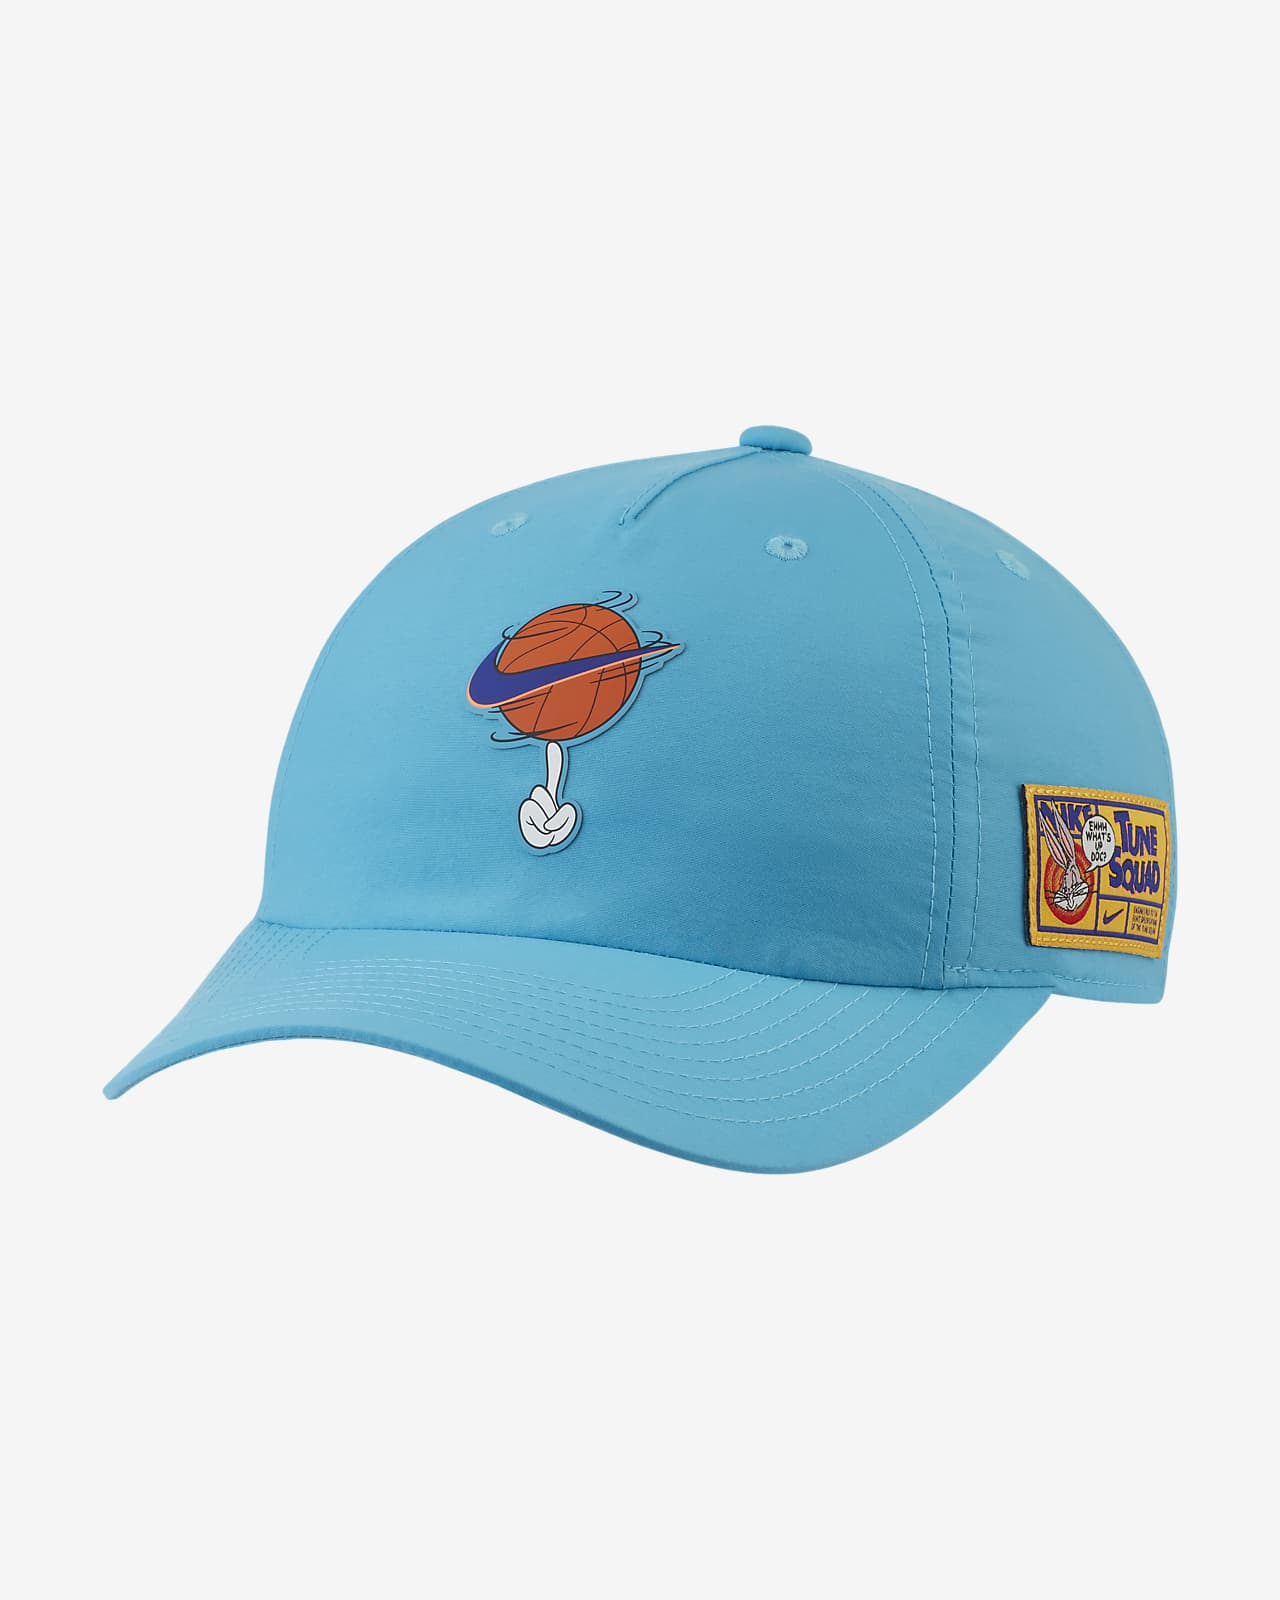 Nike Heritage86 x Space Jam: A New Legacy Basketball Cap